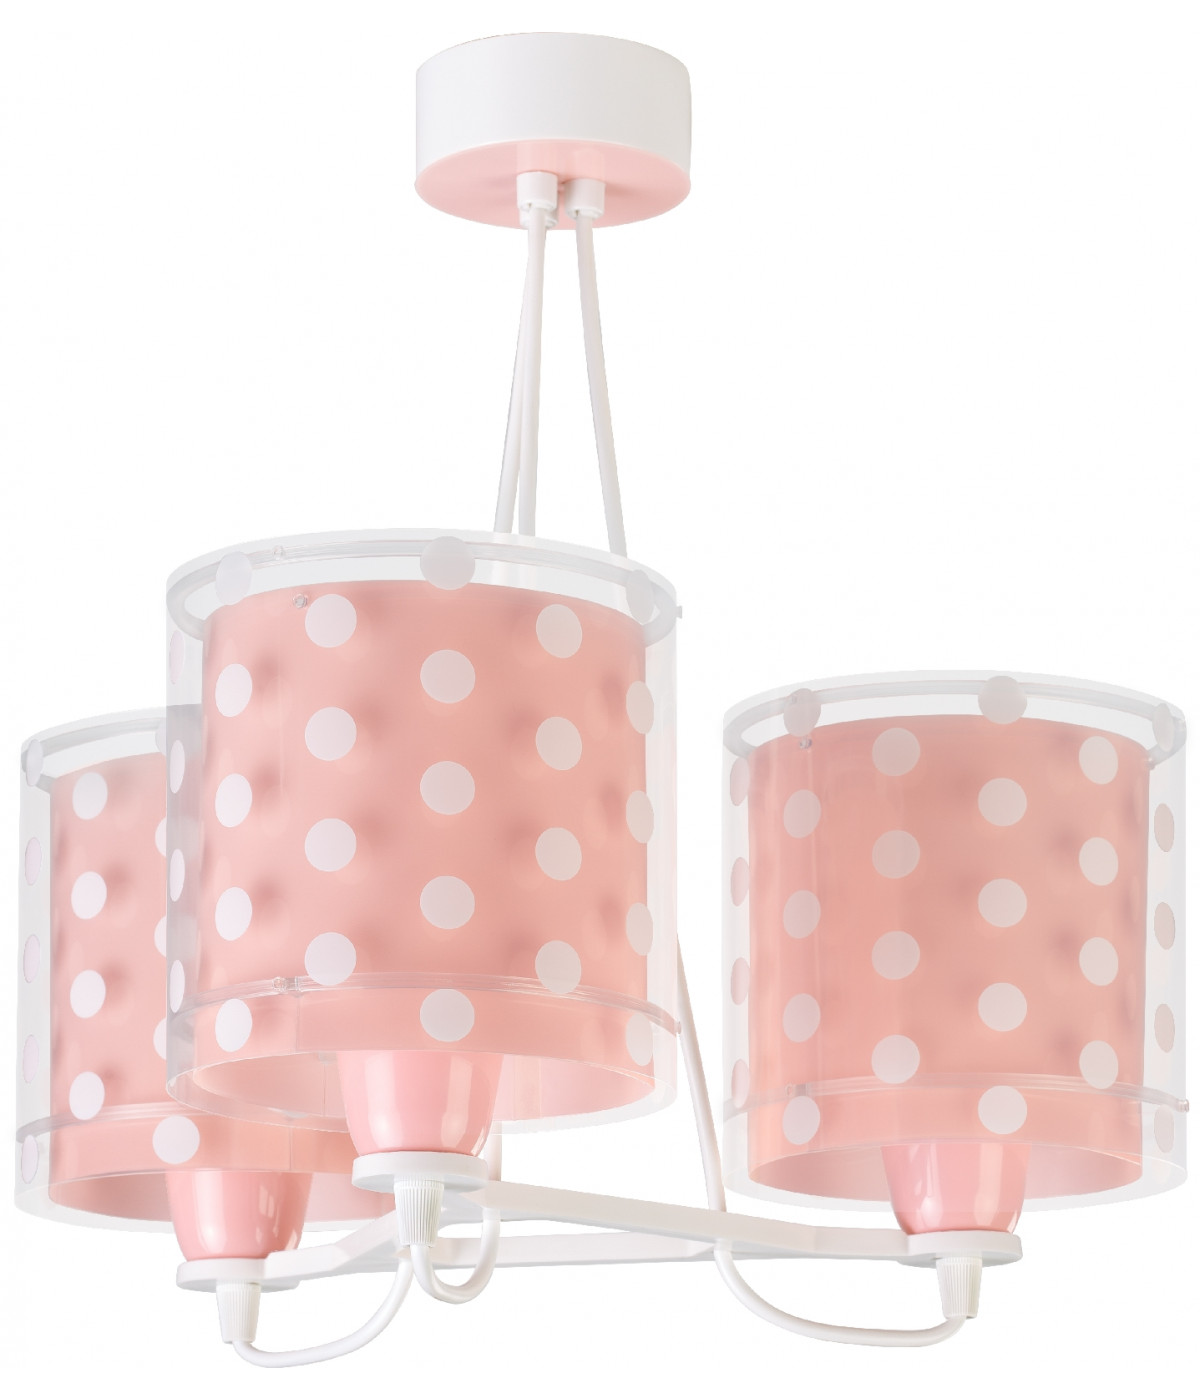 Children hanging lamp with 3 light Dots coral